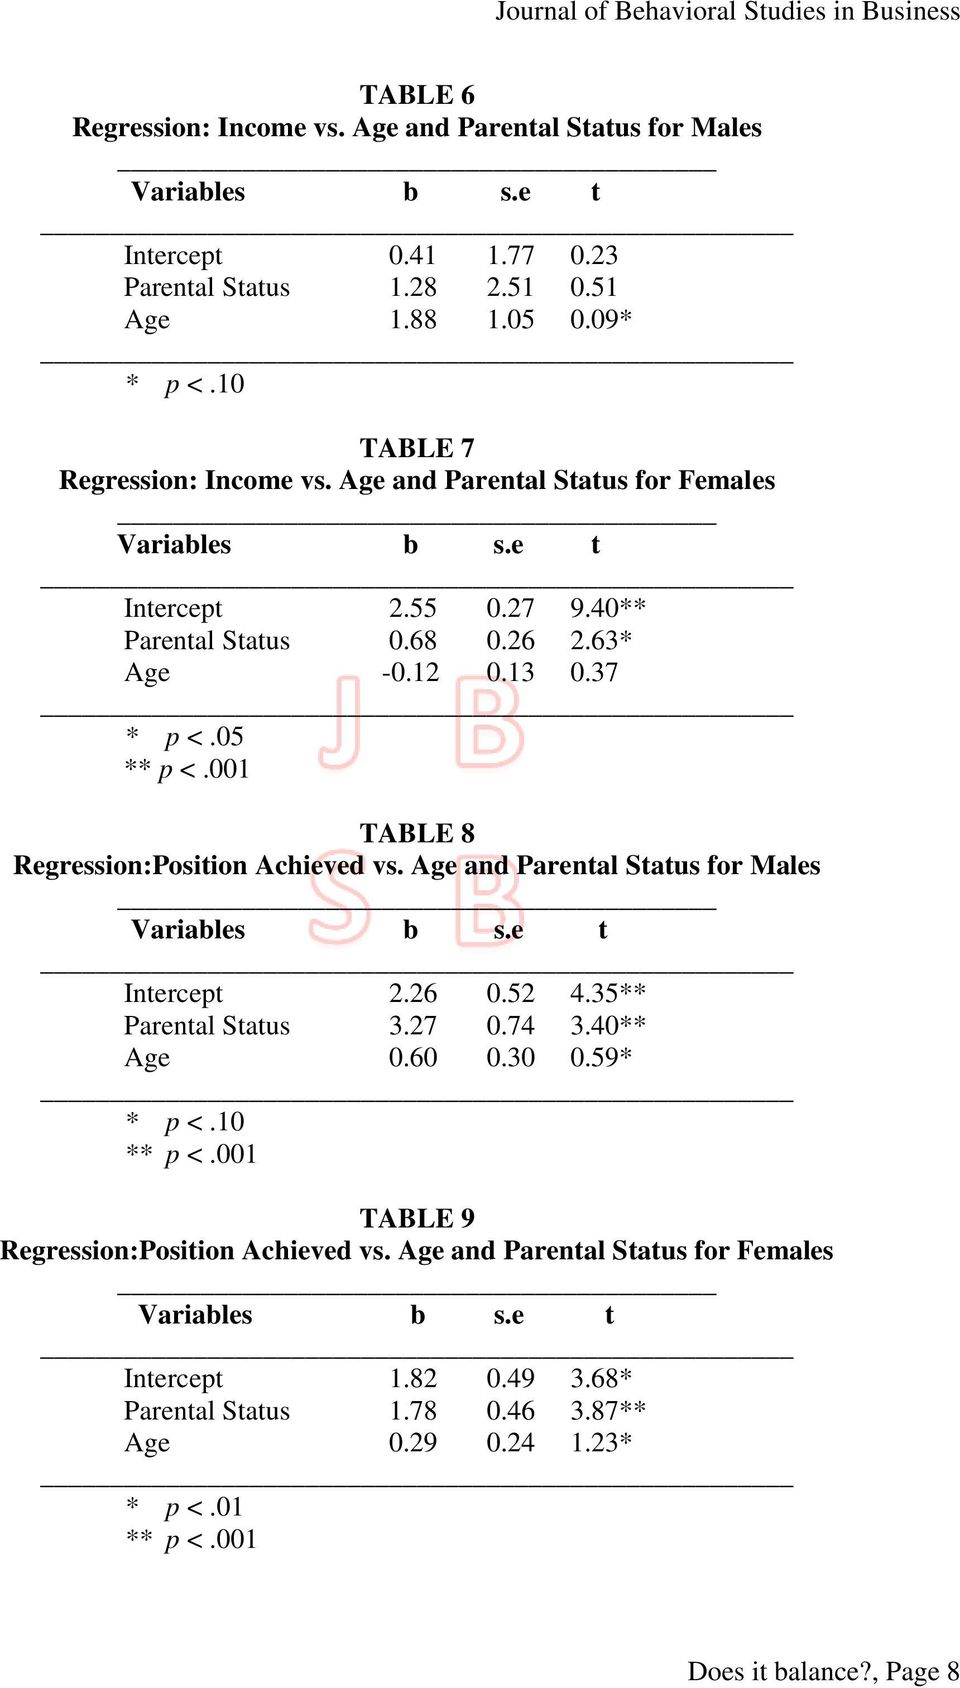 001 TABLE 8 Regression:Position Achieved vs. Age and Parental Status for Males Intercept 2.26 0.52 4.35** Parental Status 3.27 0.74 3.40** Age 0.60 0.30 0.59* * p <.